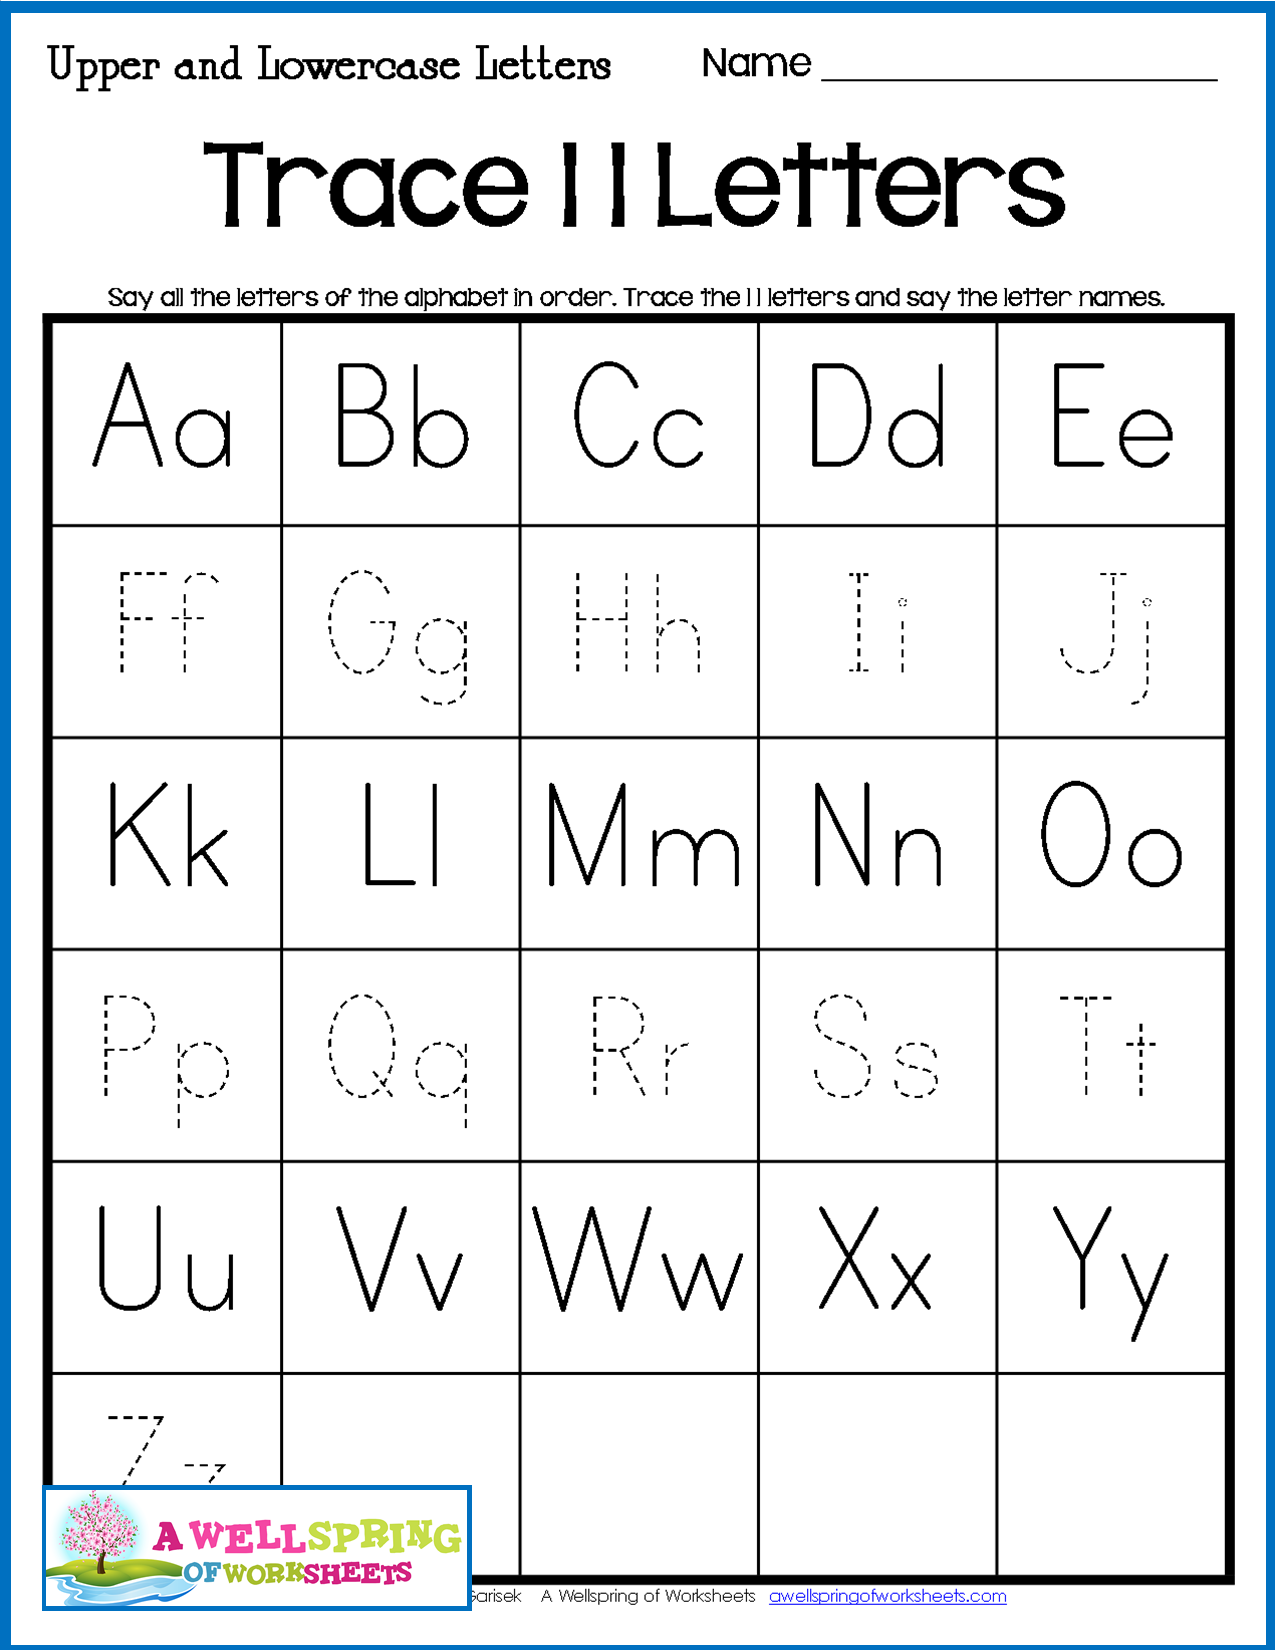 Alphabet Tracing Worksheets For Kindergarten Trace Some Or All Of The Letters A Variety Of 30 Alphabet Tracing Worksheets Tracing Worksheets Alphabet Tracing [ 1650 x 1275 Pixel ]